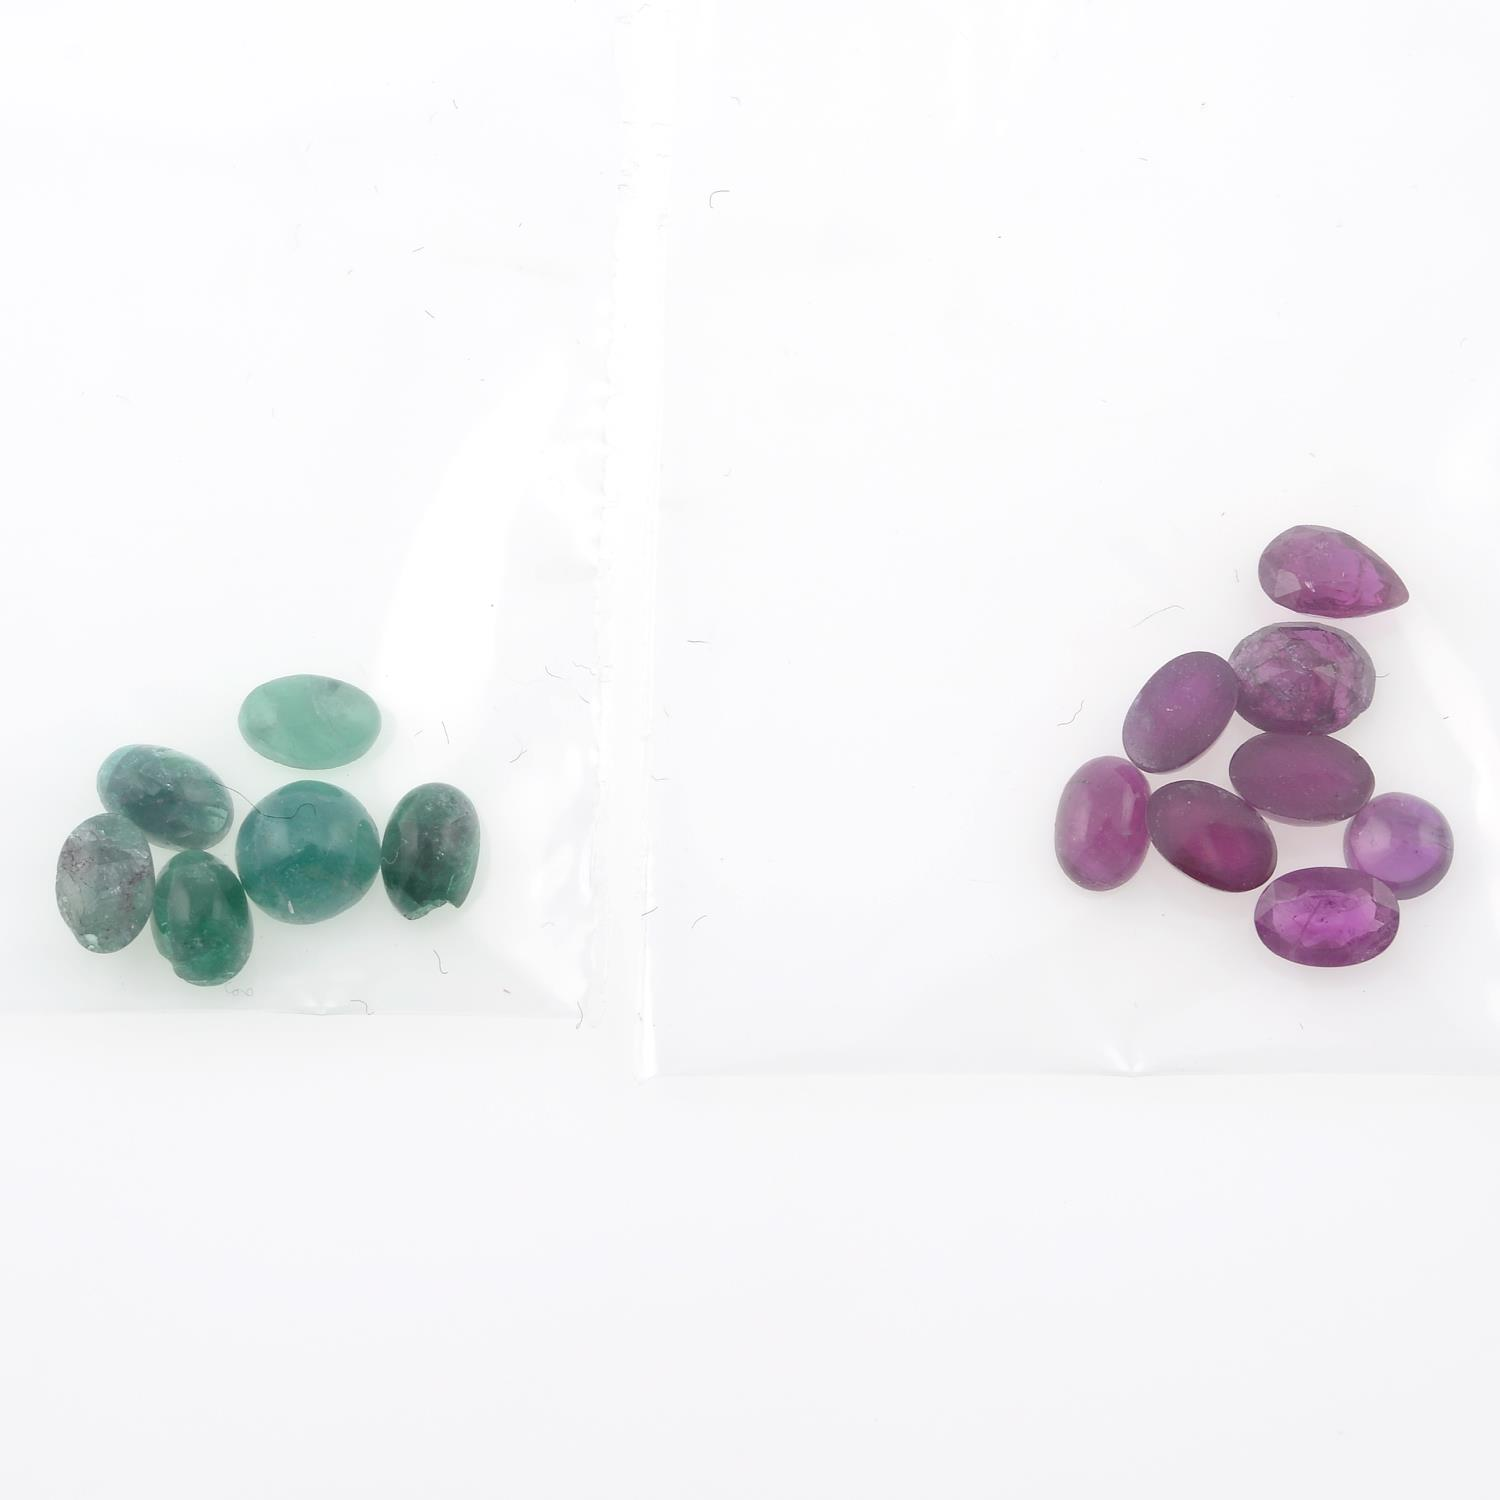 A selection of vari-shape emeralds and rubies. - Image 2 of 2